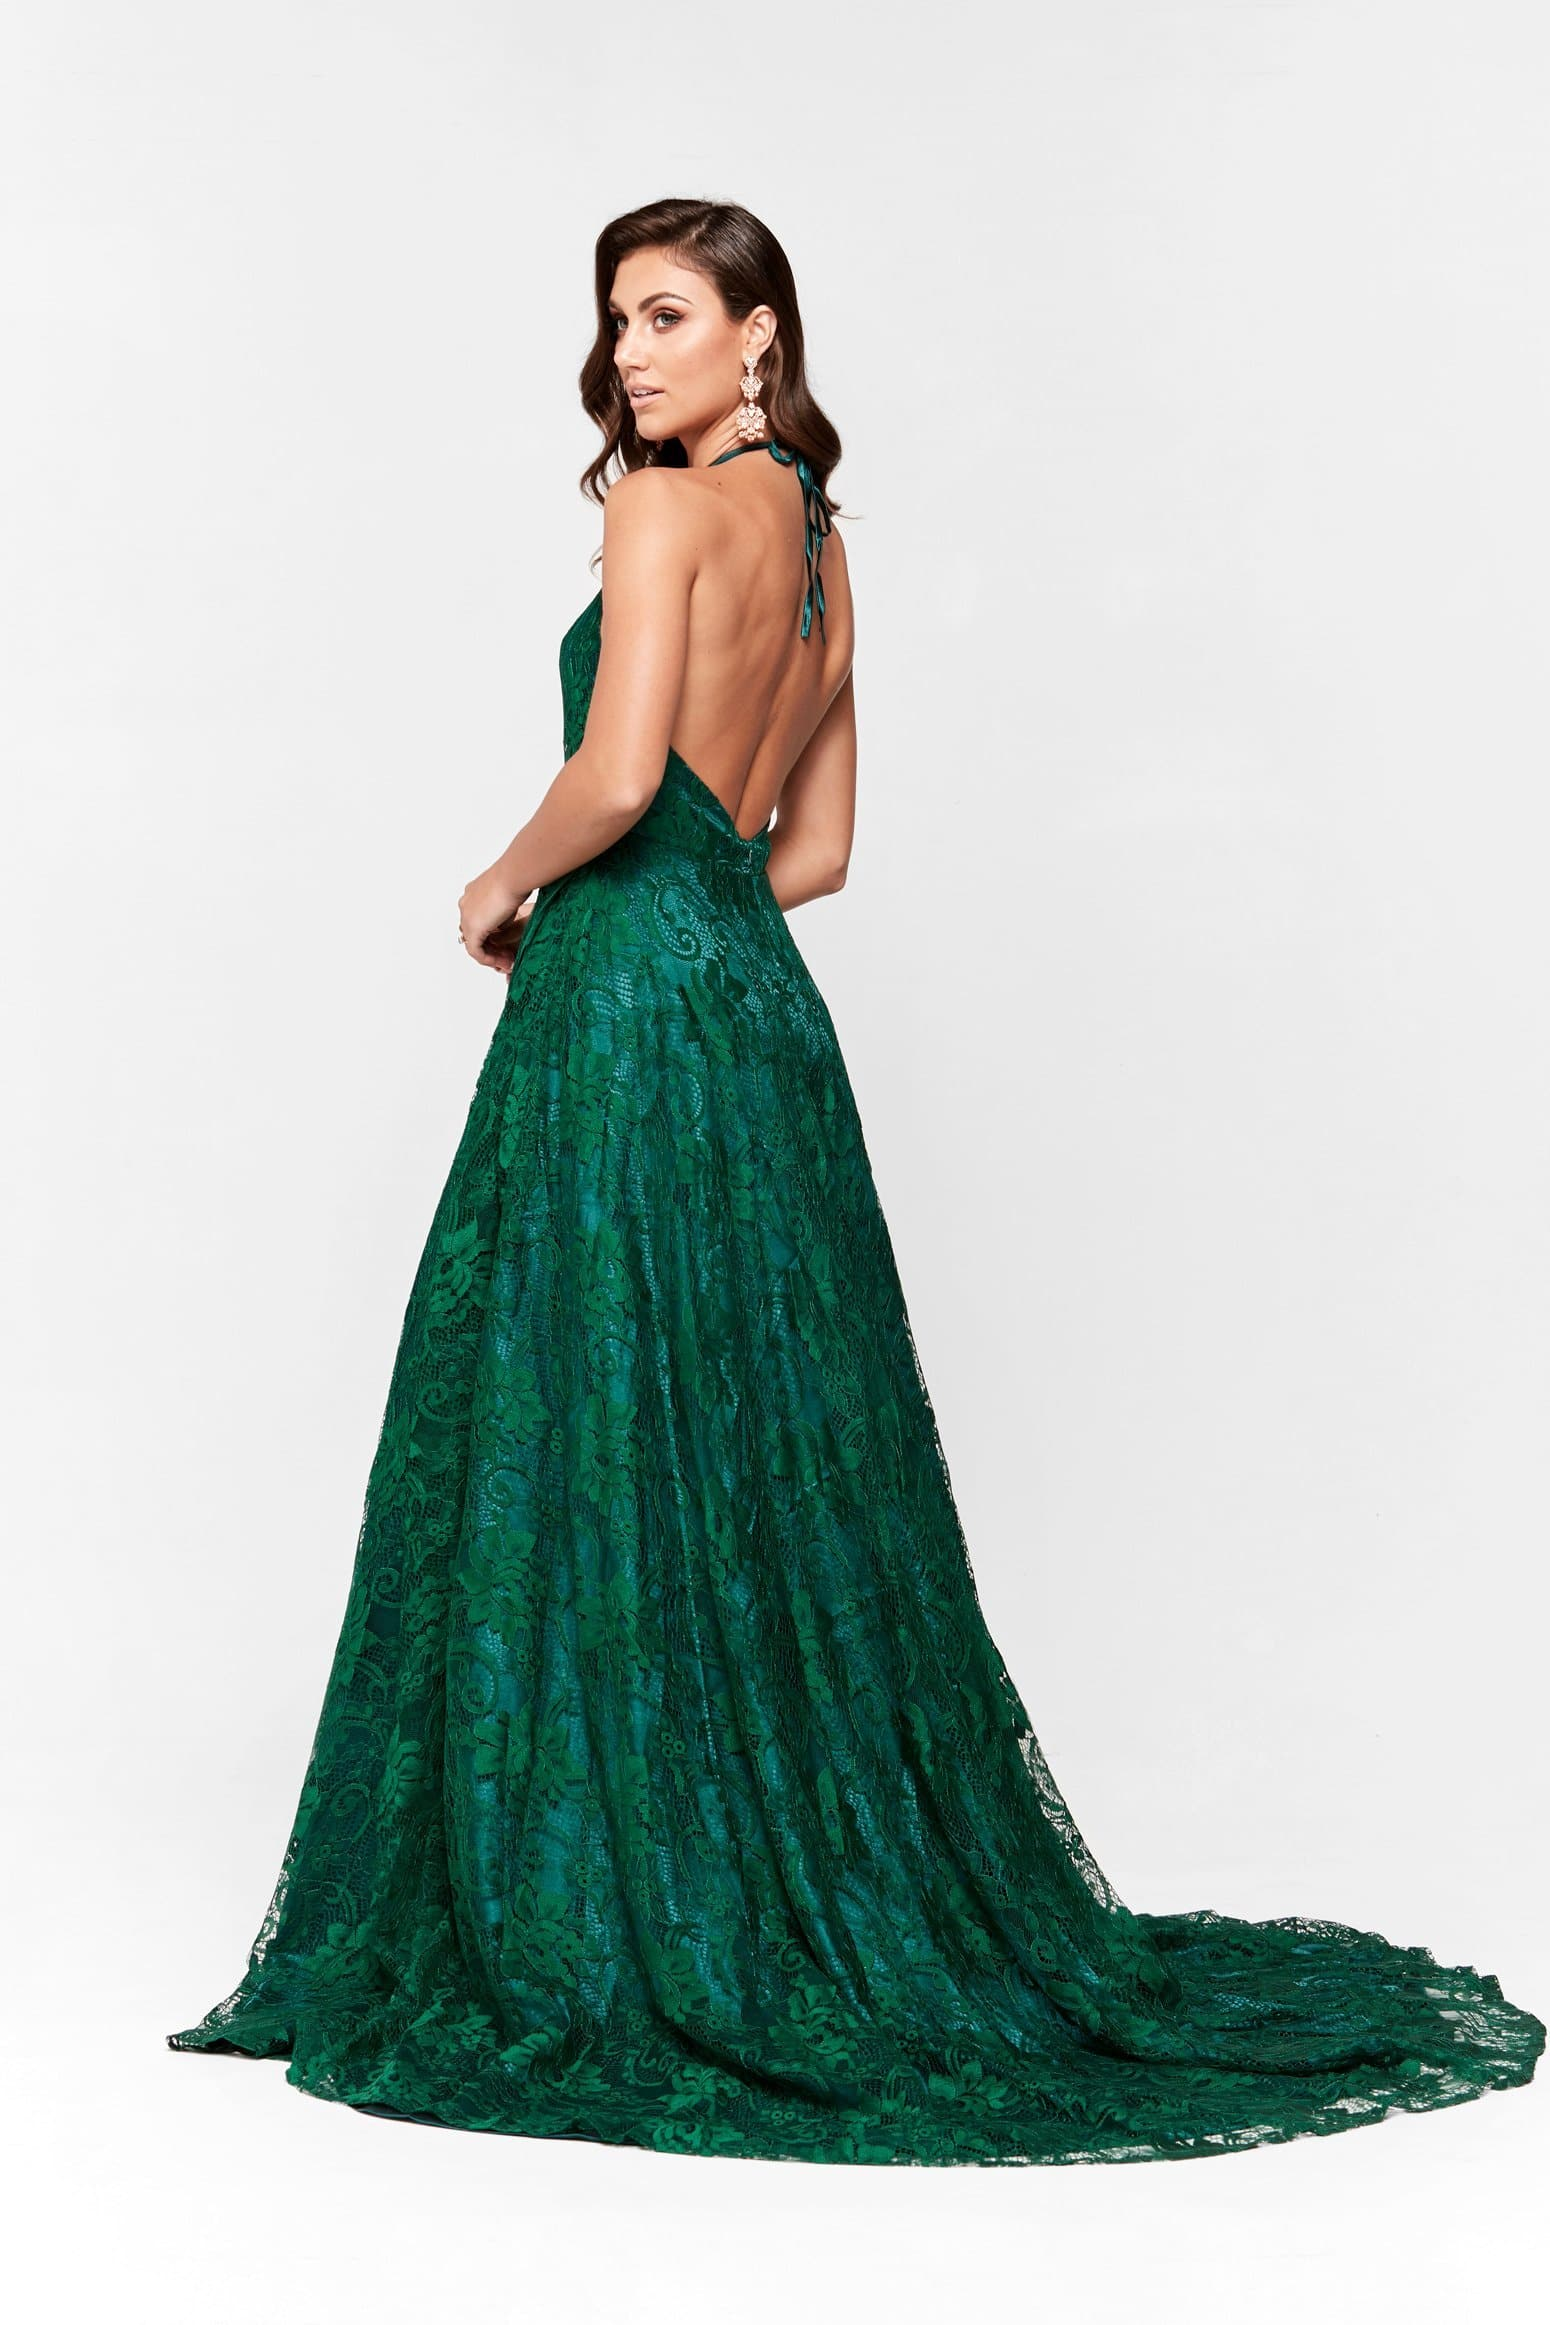 A&N Frida - Emerald Lace Gown with Plunging Neckline & Side Slit